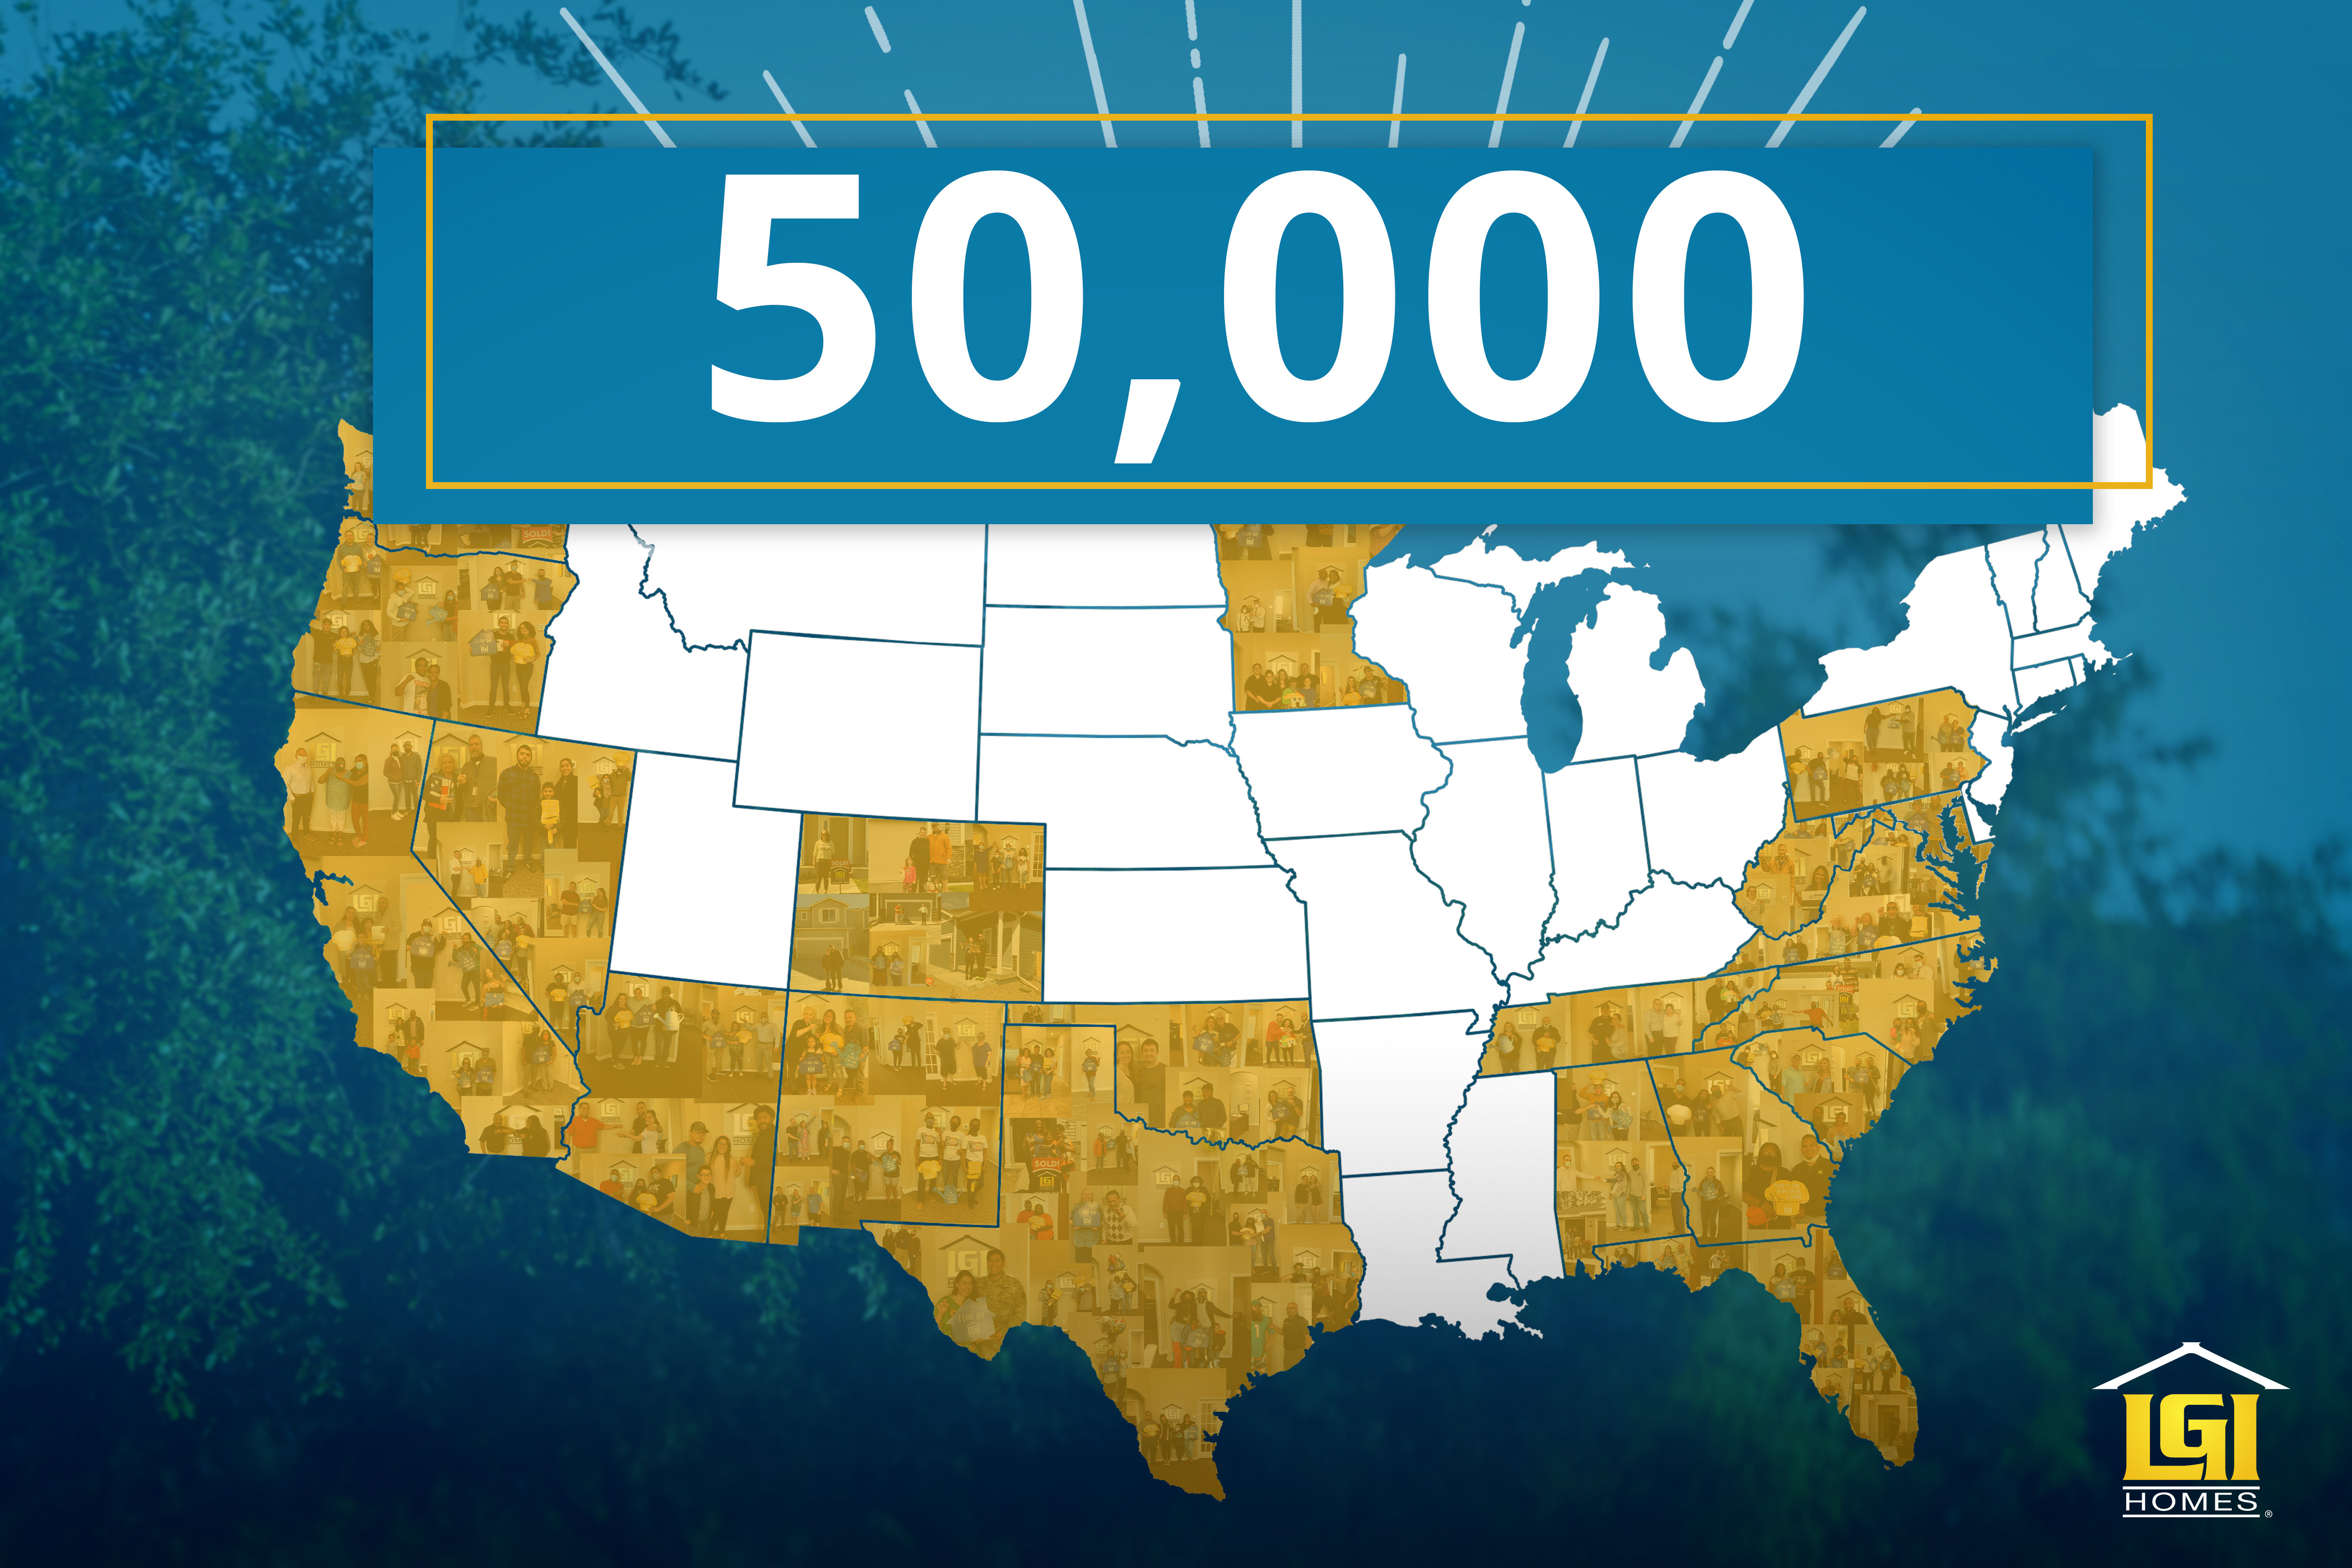 LGI Homes Achieves Significant Milestone of 50,000th Home Closing Since Inception